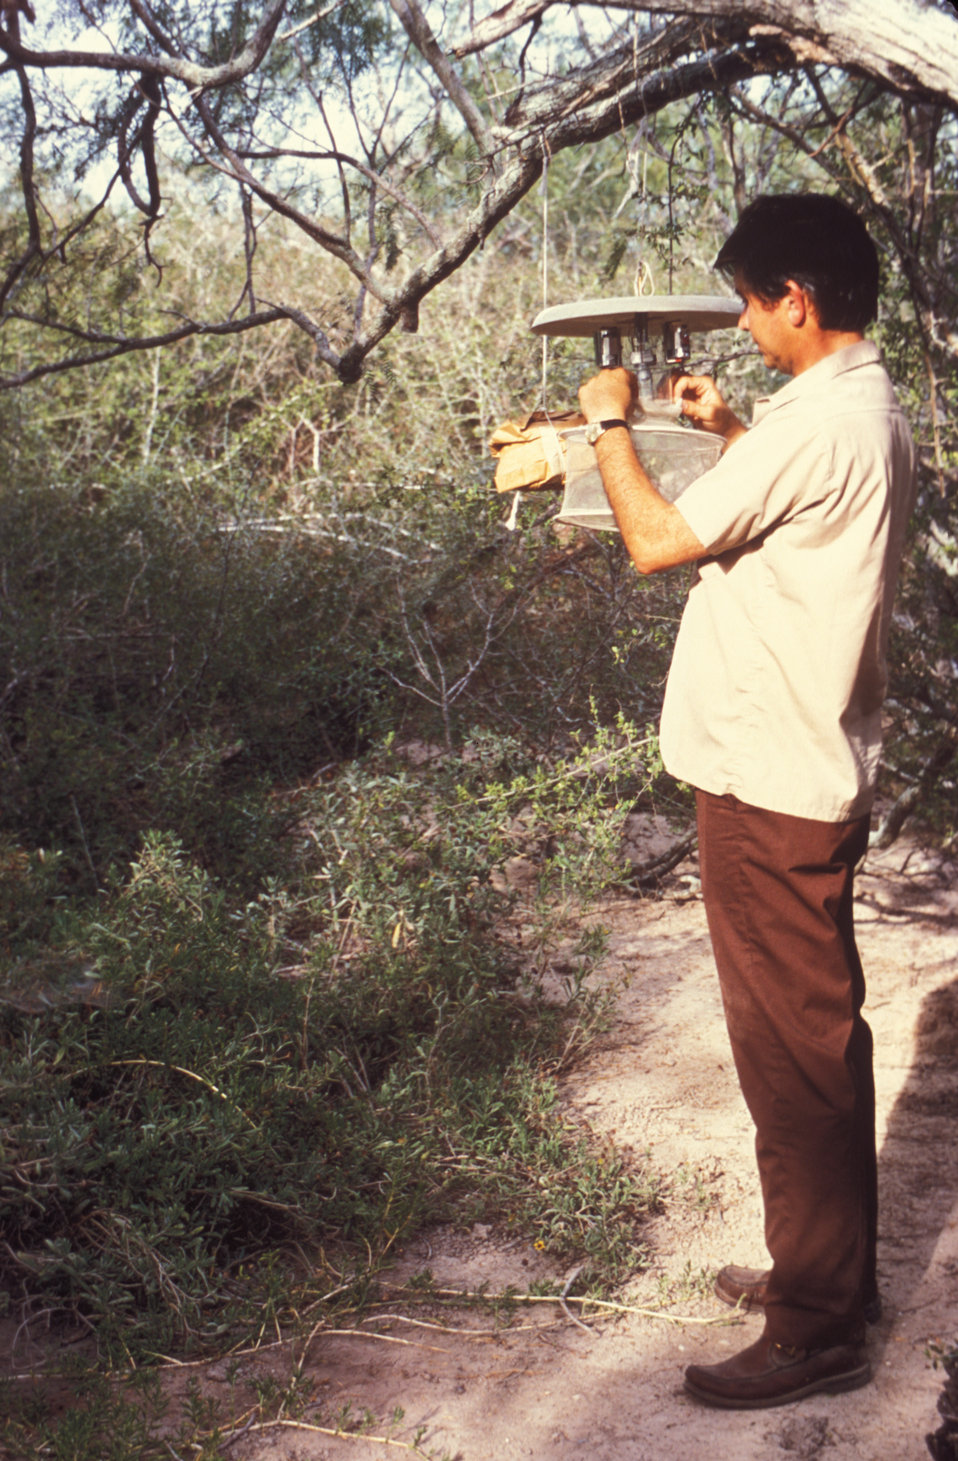 This technician is setting up a CDC light trap used to collect mosquitoes in the field.